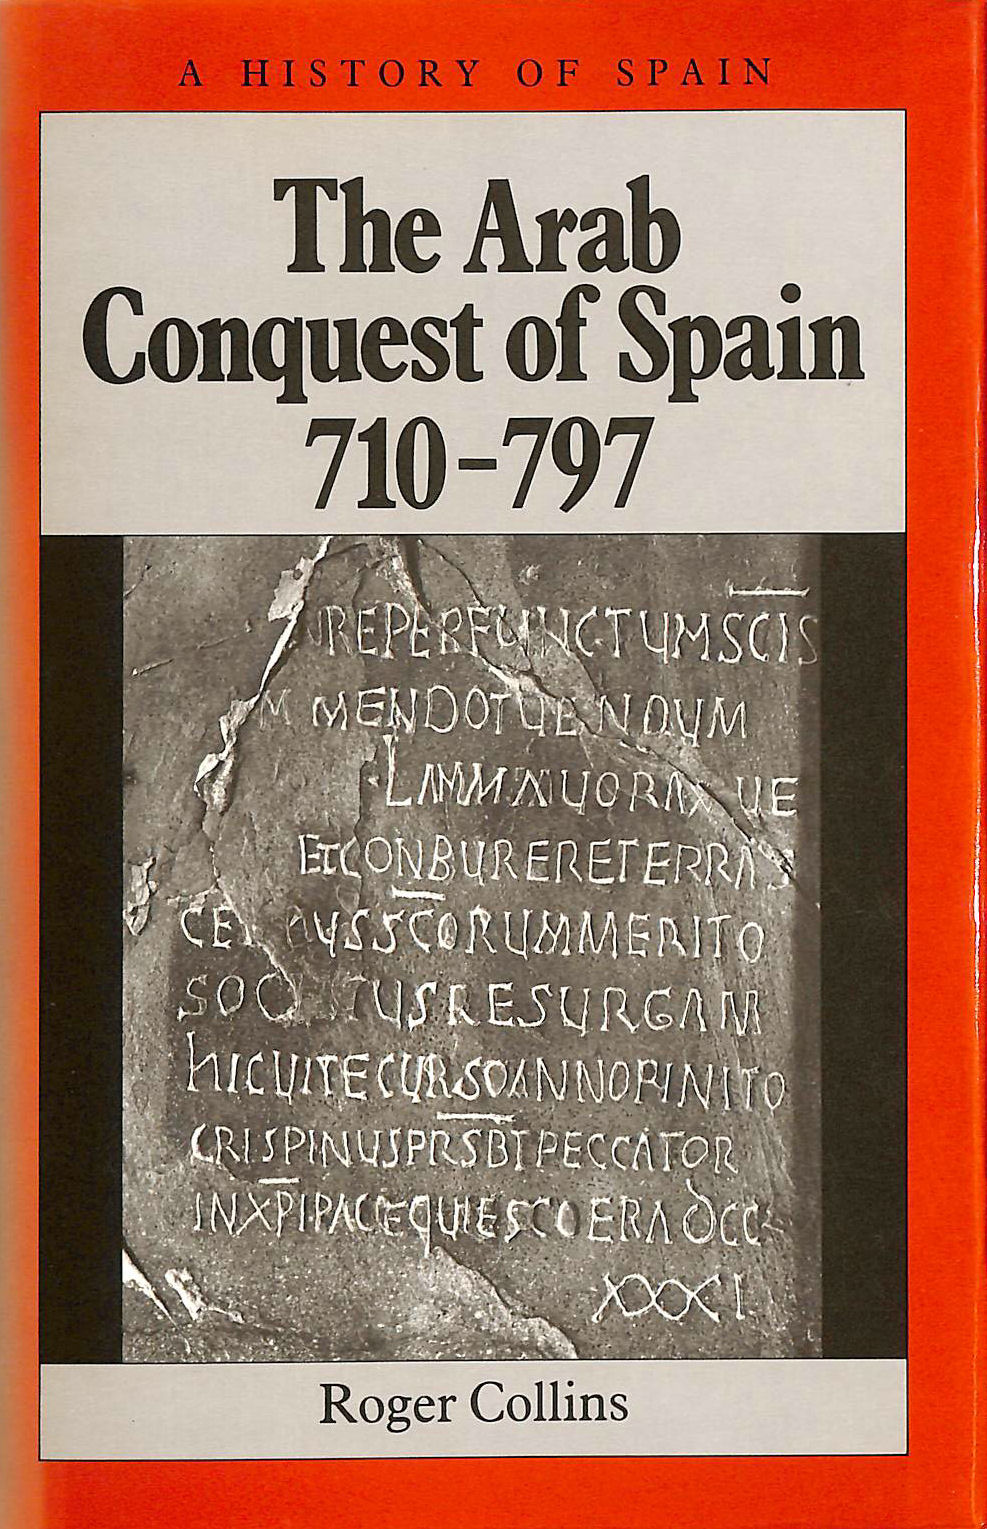 Image for The Arab Conquest of Spain, 710-797 (History of Spain)